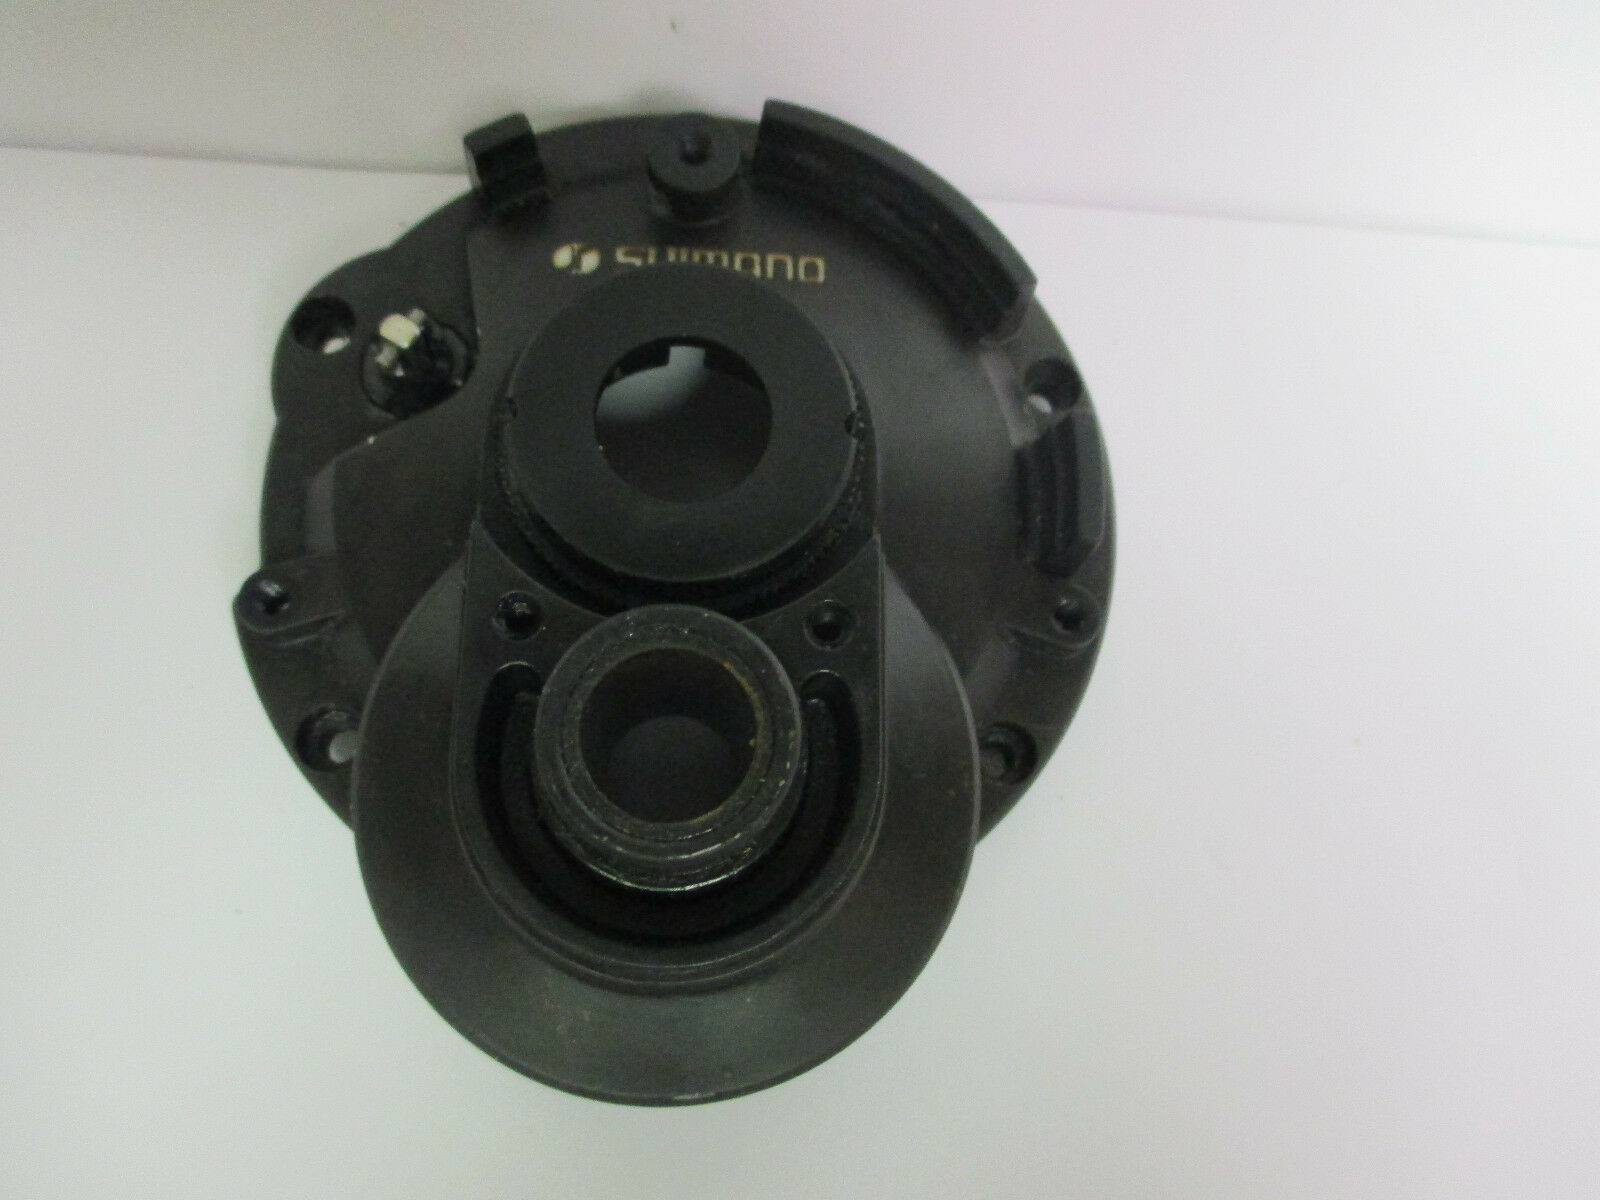 USED SHIMANO REEL PART - Beastmaster 20 30 2 Speed - Right Side Plate  A